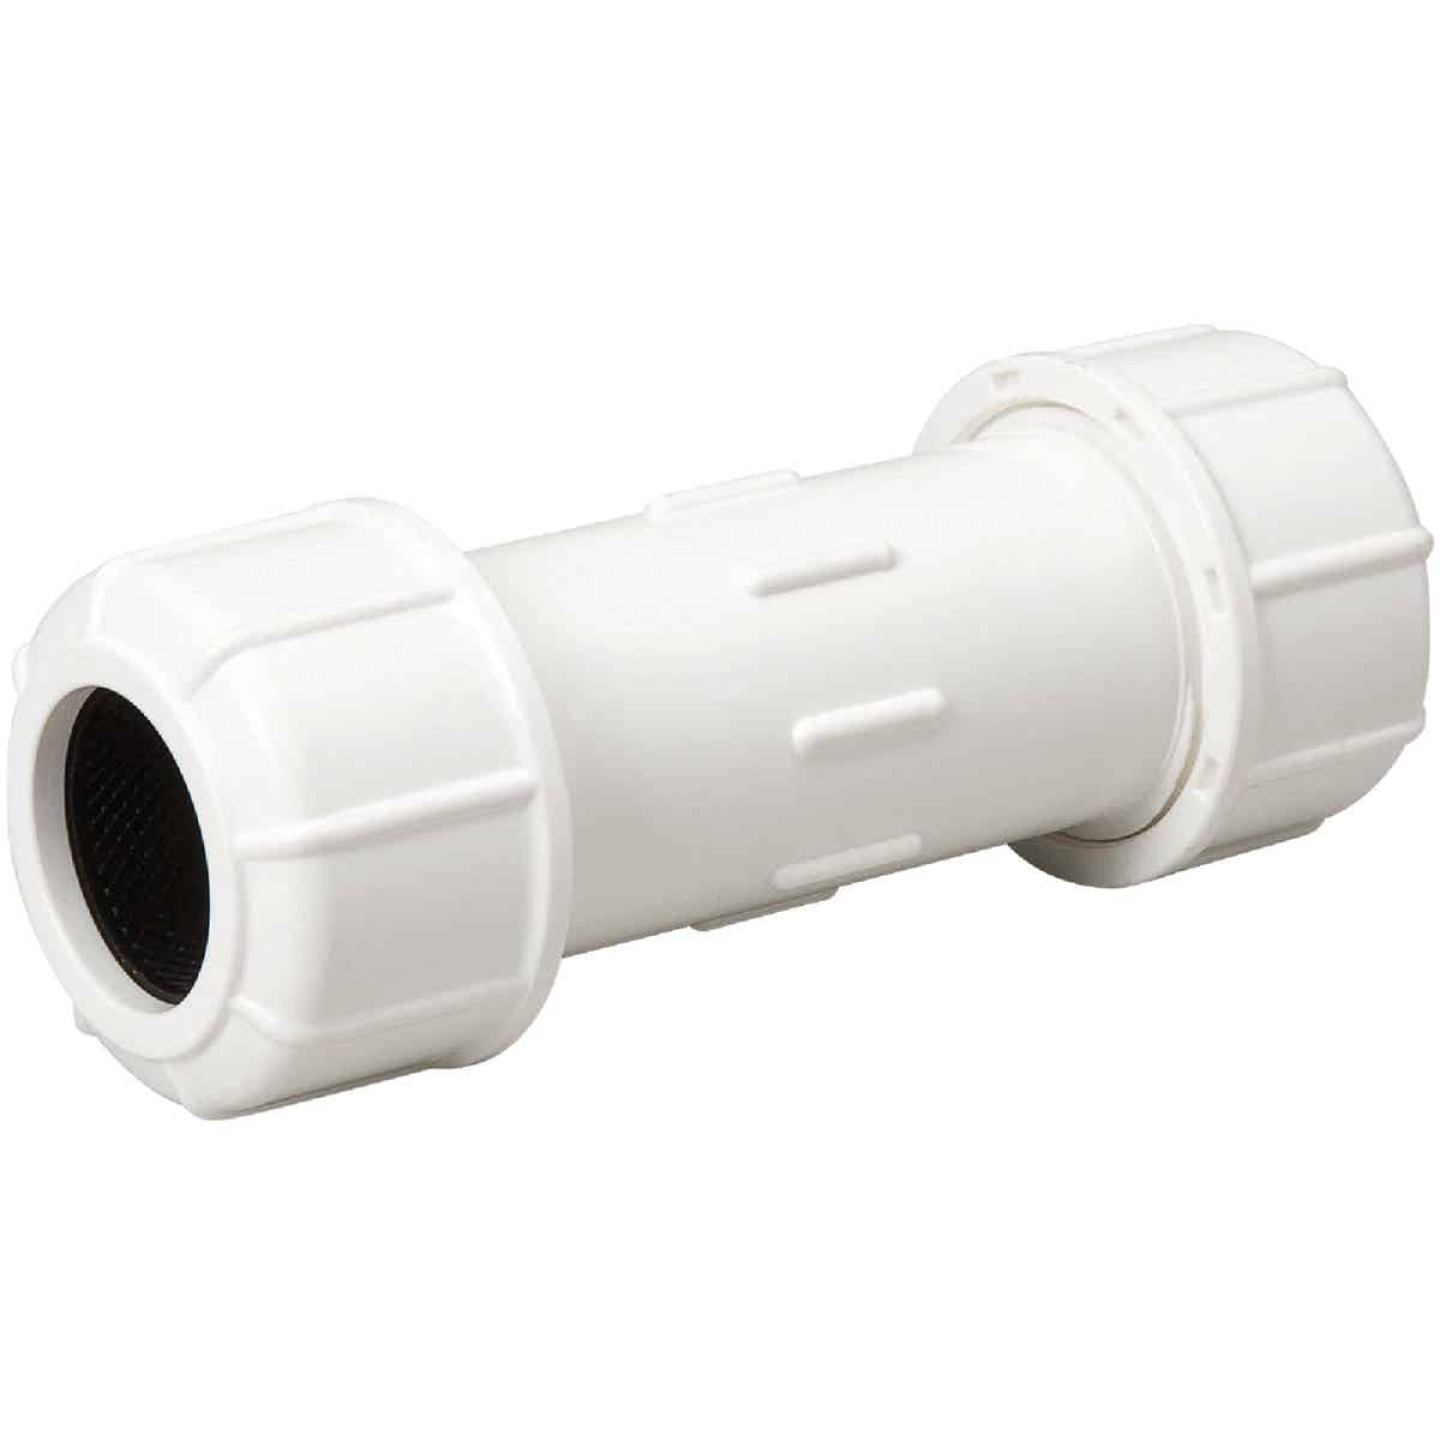 B & K 1-1/4 In. X 6 In. Compression PVC Coupling  Image 1